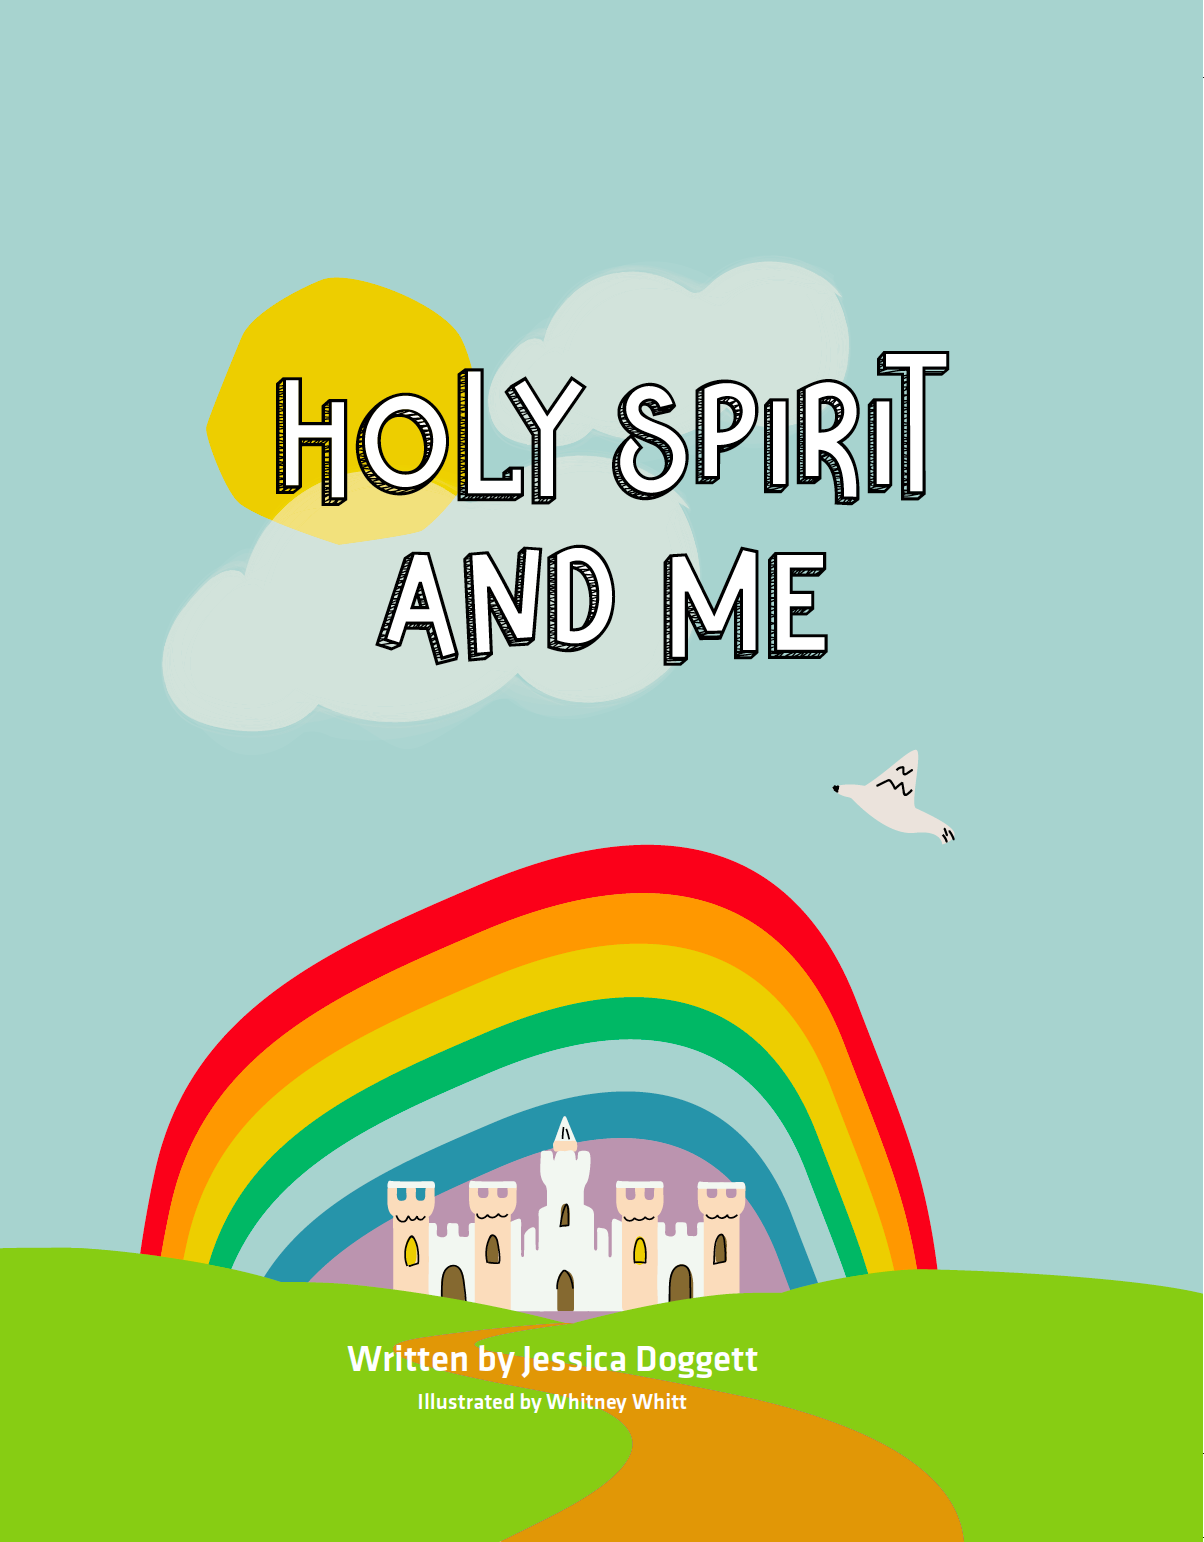 Holy Spirit and Me by Jessica Doggett